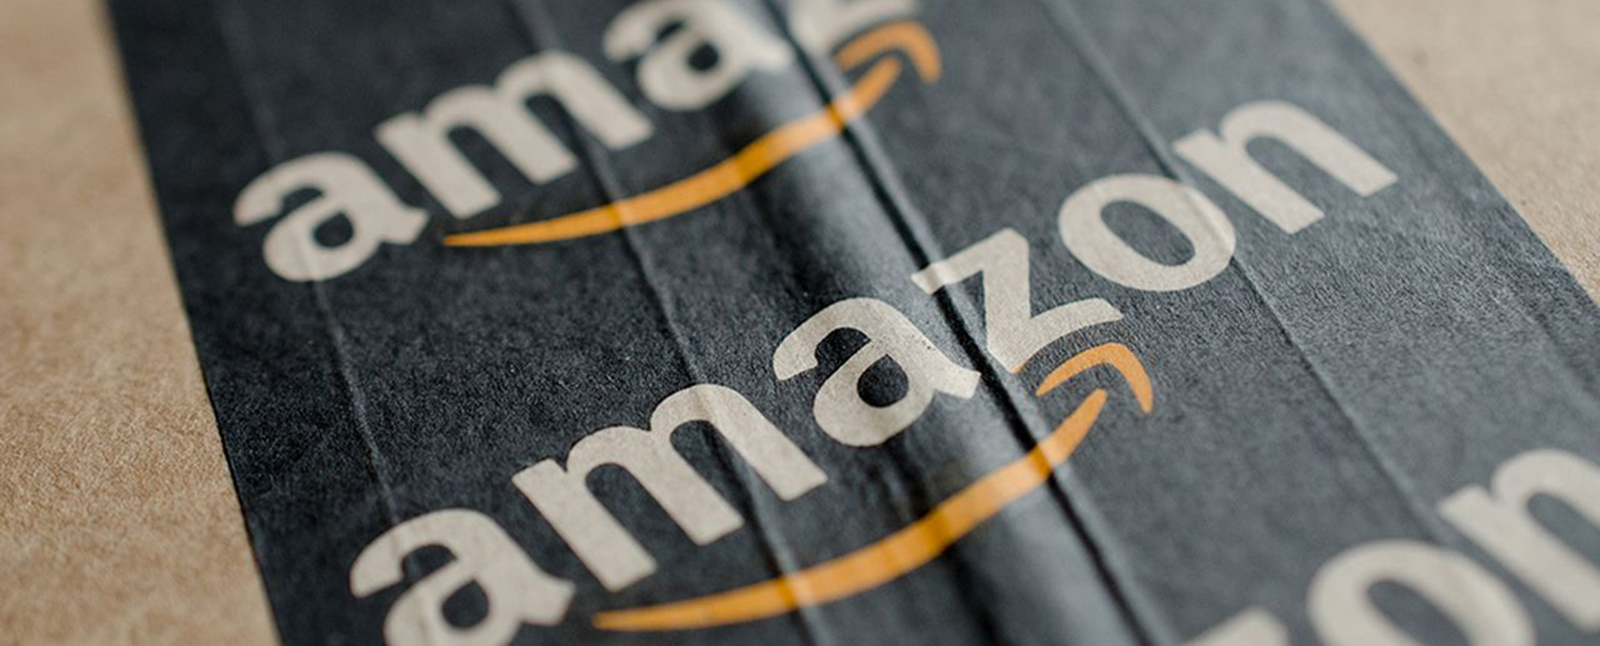 Amazon counterfeiters wreak havoc on artists and small businesses